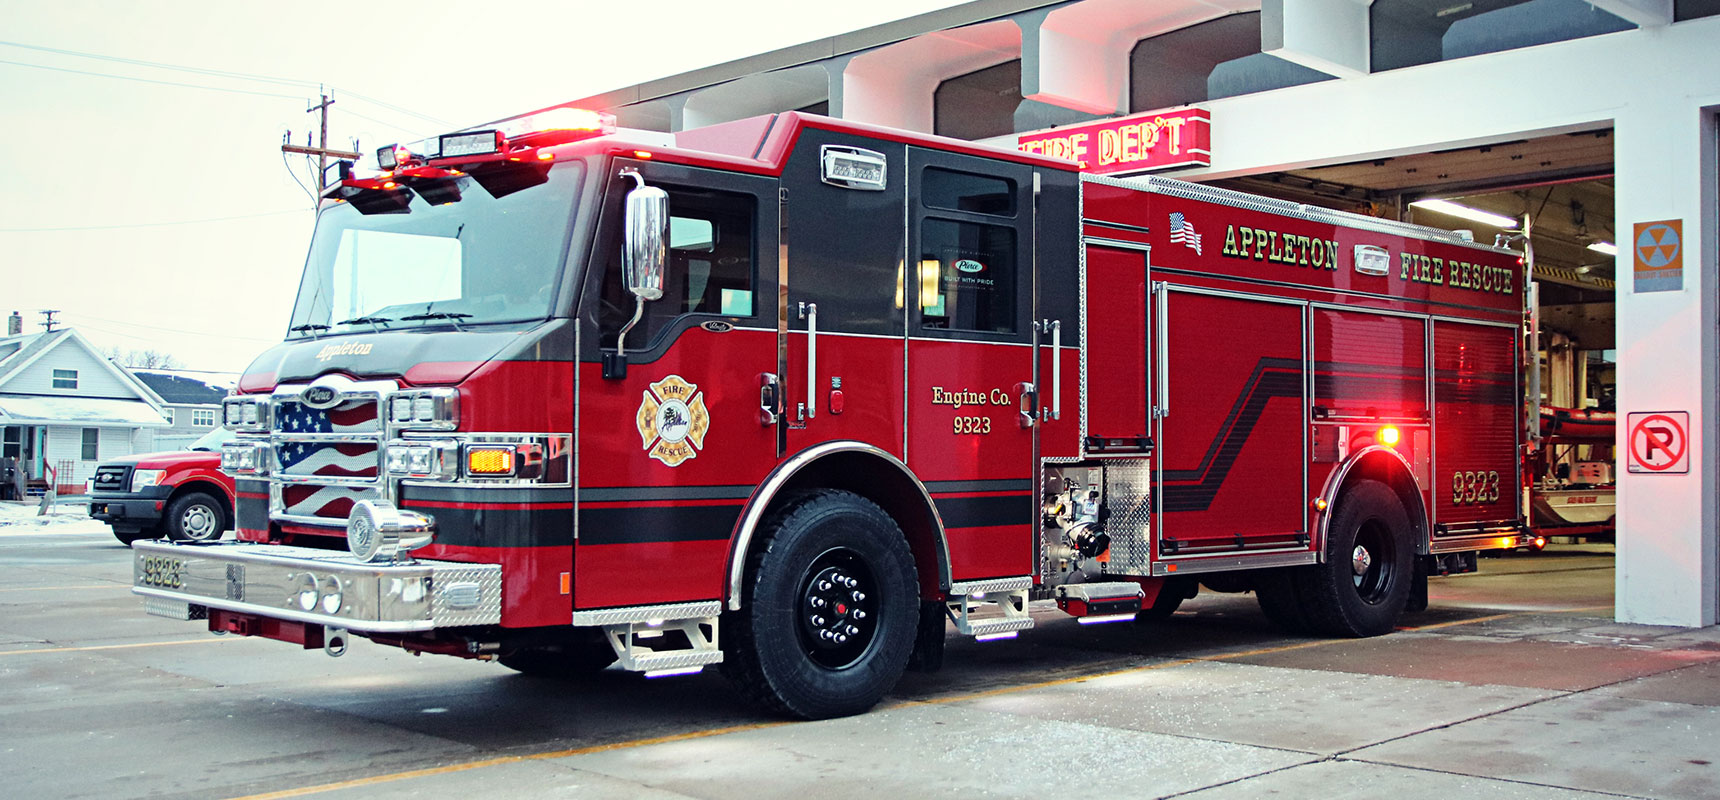 Pierce-Mfg-Delivers-the-2000th-Pierce-Ultimate-Configuration-Pumper.jpg